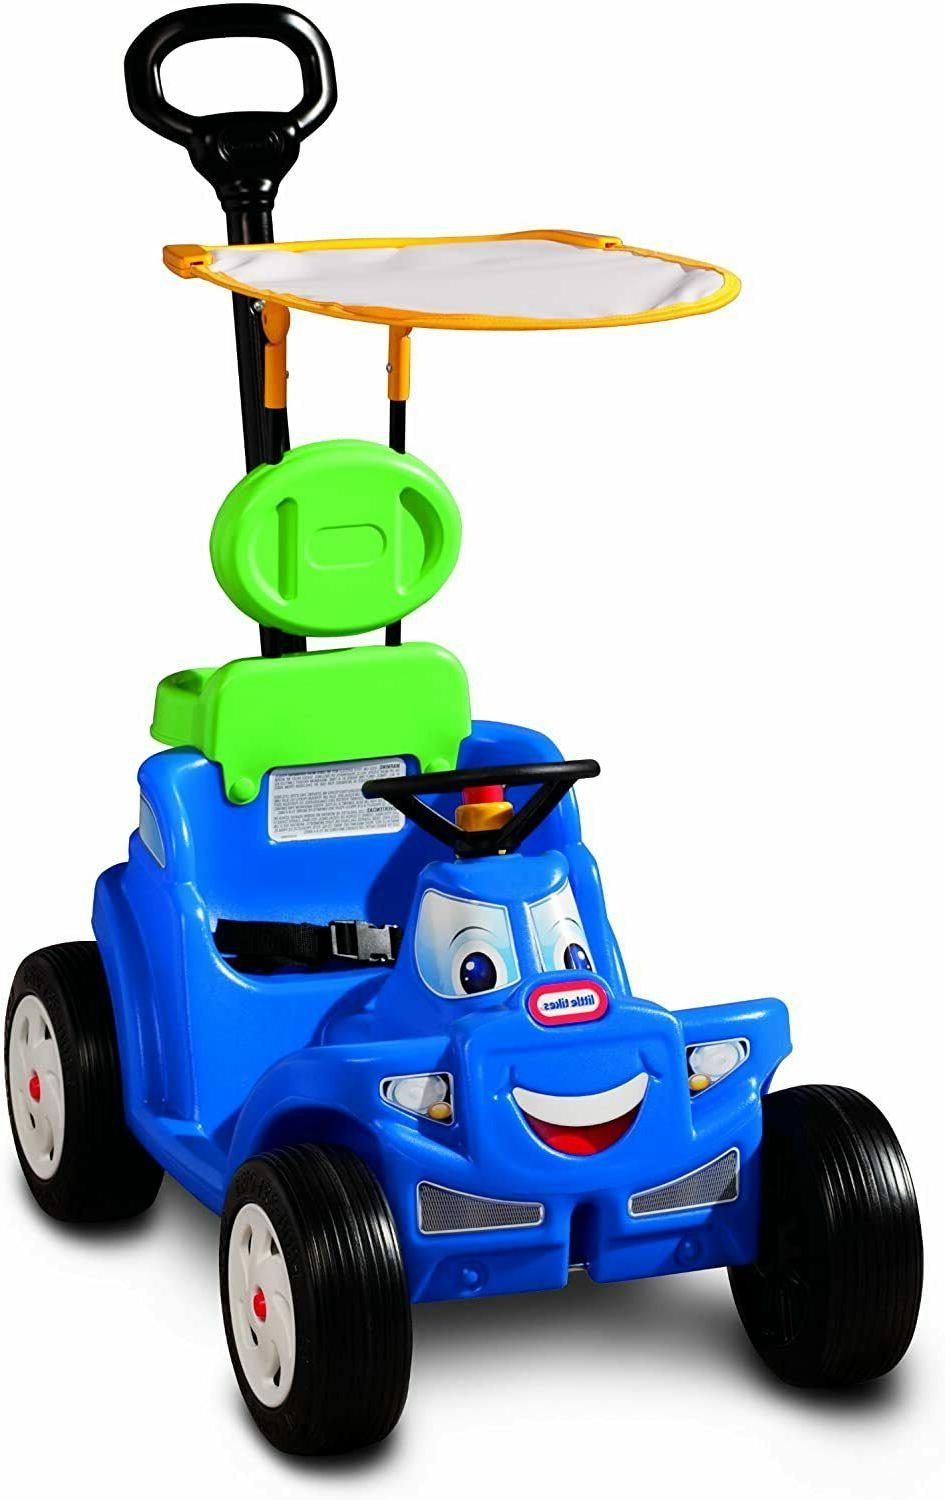 Ride Toys Girls Boys Toddlers Riding 1-4 Year Baby